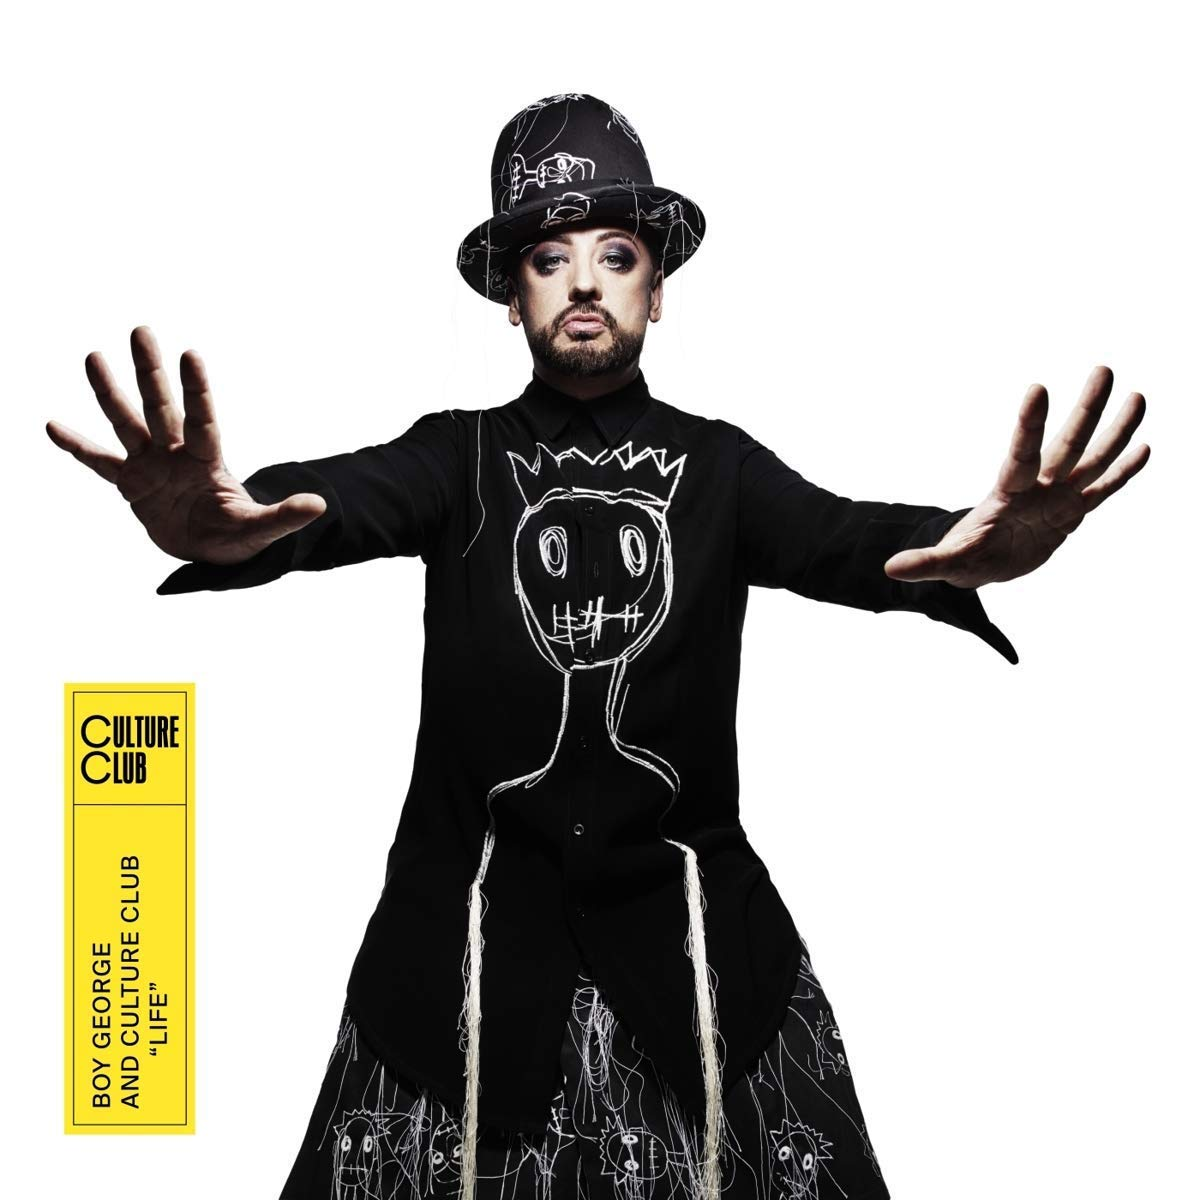 Cassette : Boy George & Culture Club - Life (Cassette)